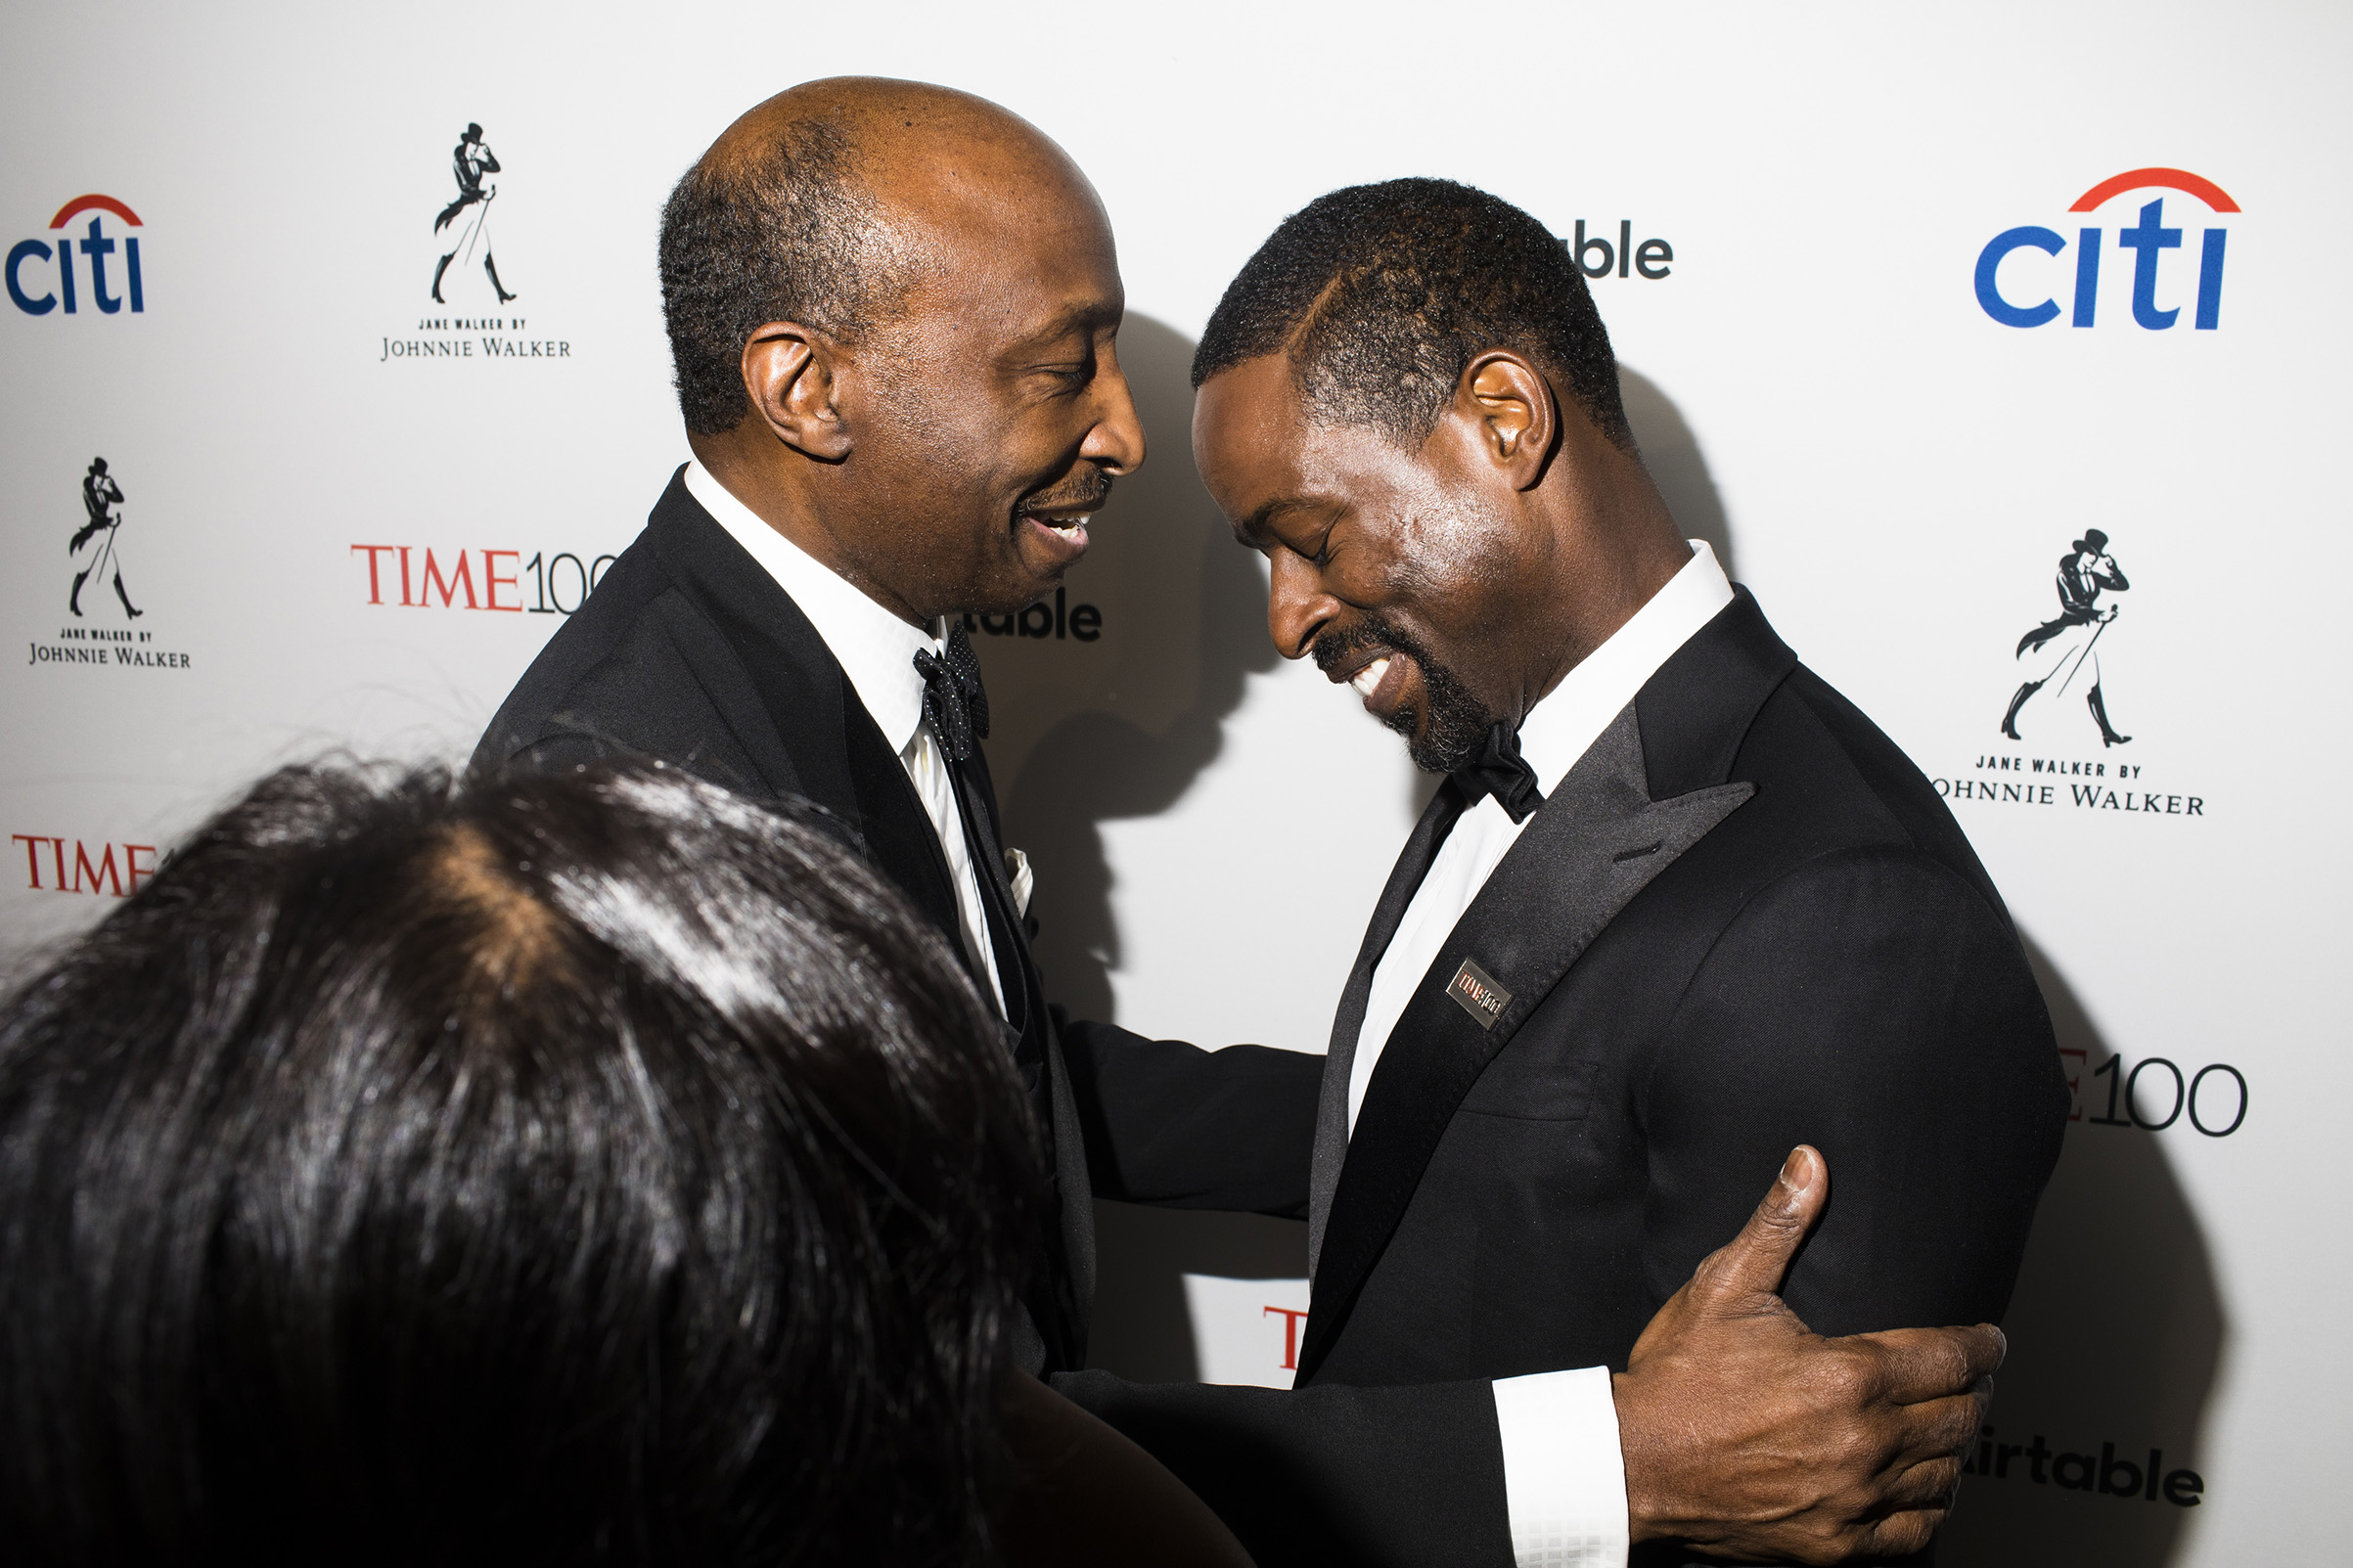 Chairman and CEO Merck & Co., Inc. Kenneth Frazier and actor Sterling K. Brown at the Time 100 Gala at Jazz at Lincoln Center on April 24, 2018 in New York City.